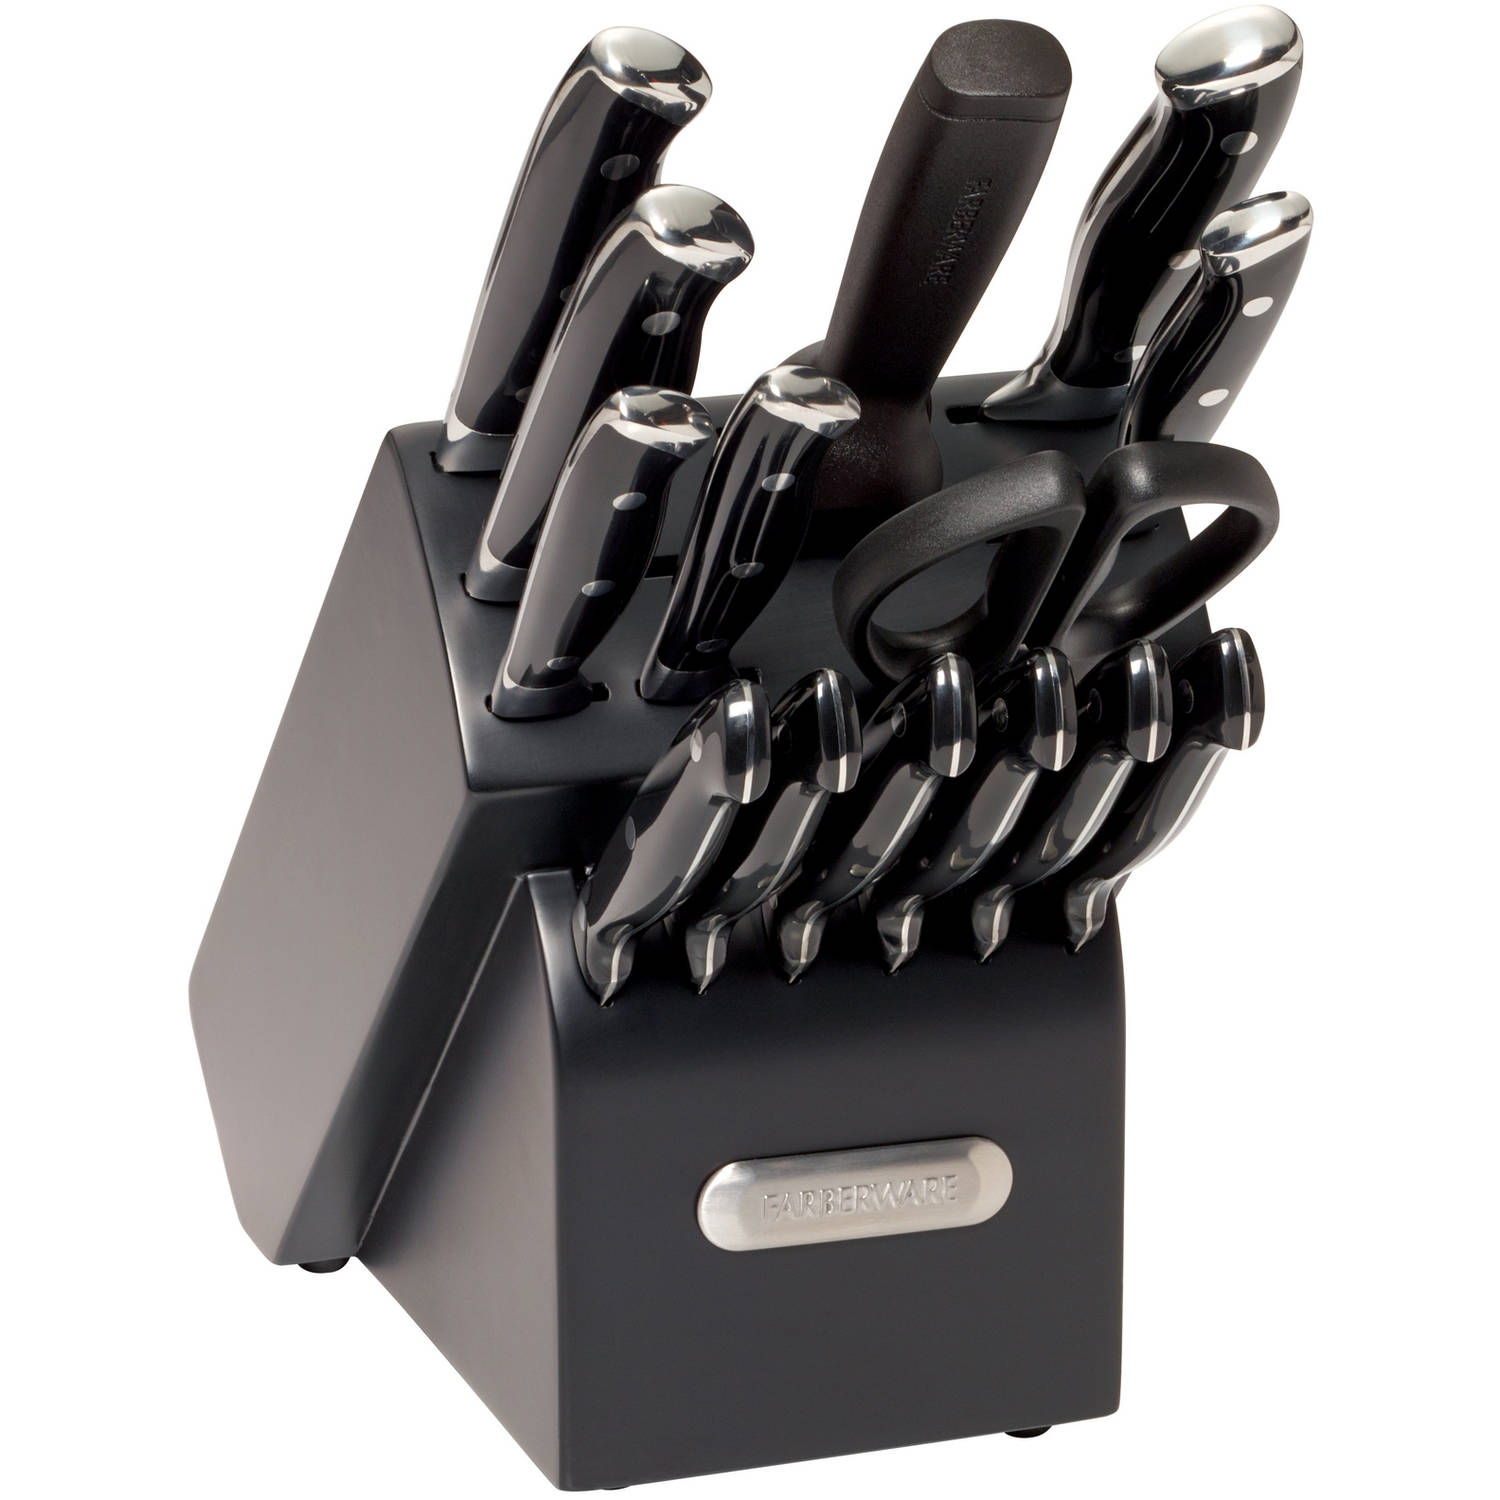 Farberware 15-Piece Forged Triple Riveted Knife Set, Black by Farberware